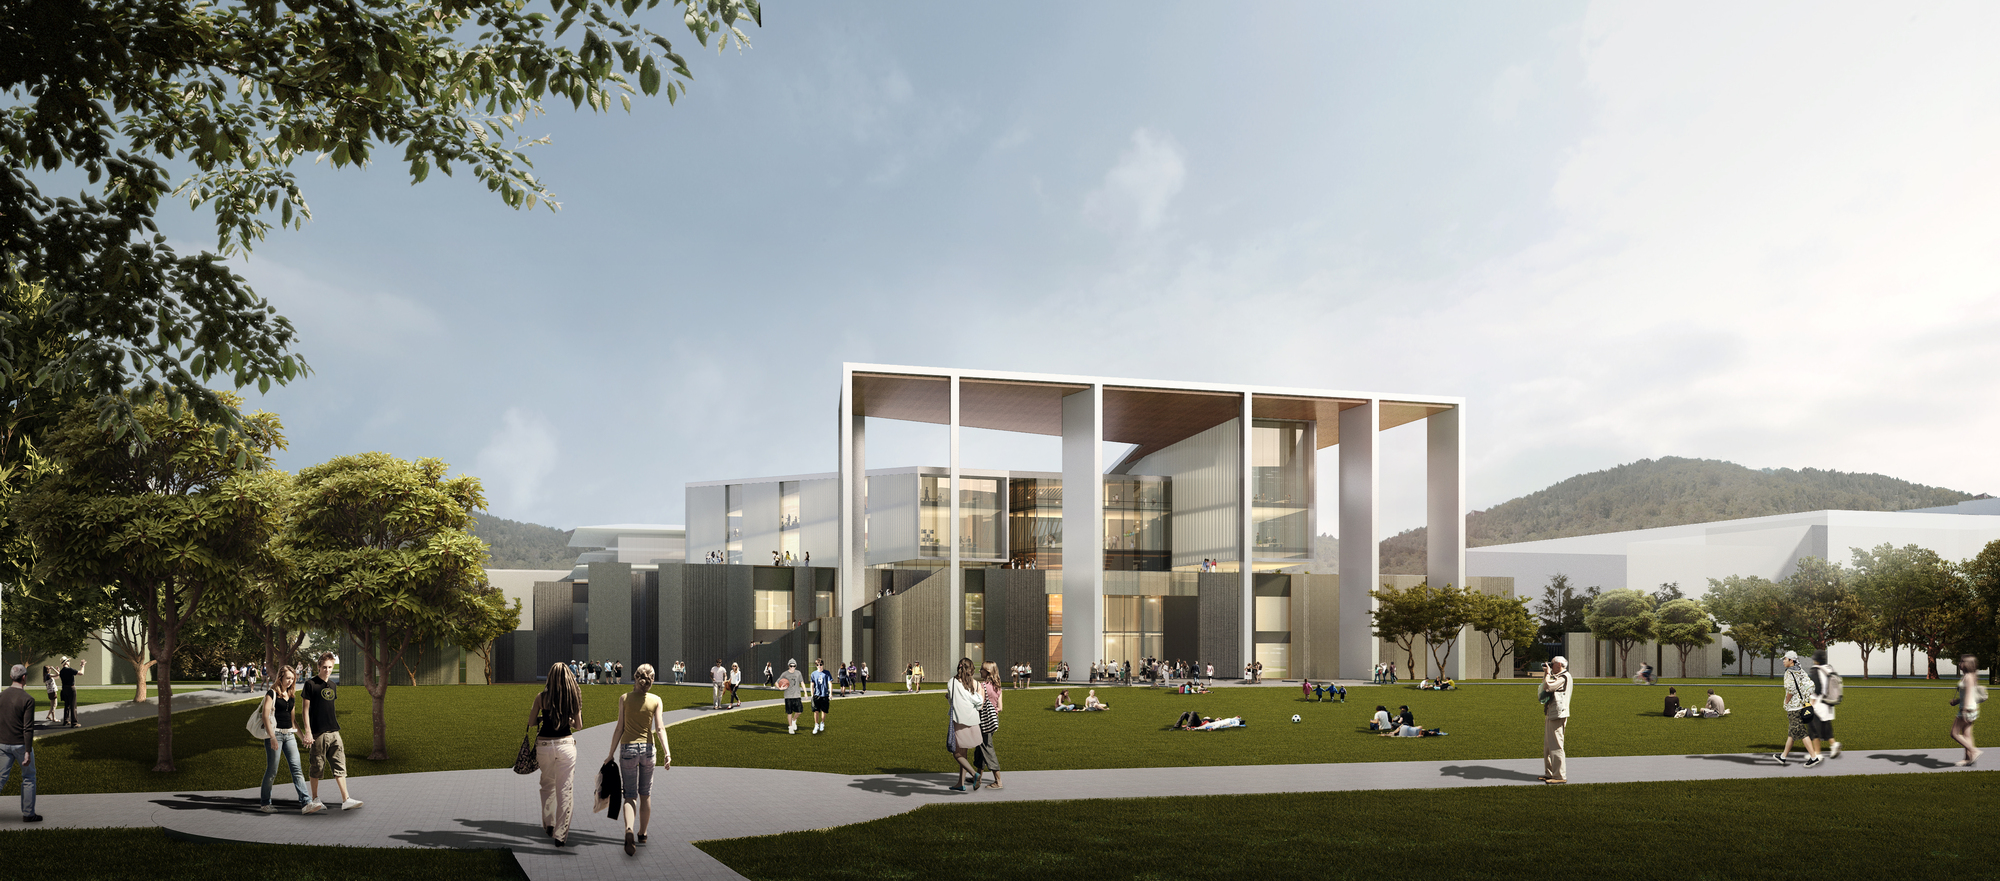 Winning Design Revealed for New College of Architecture and Design